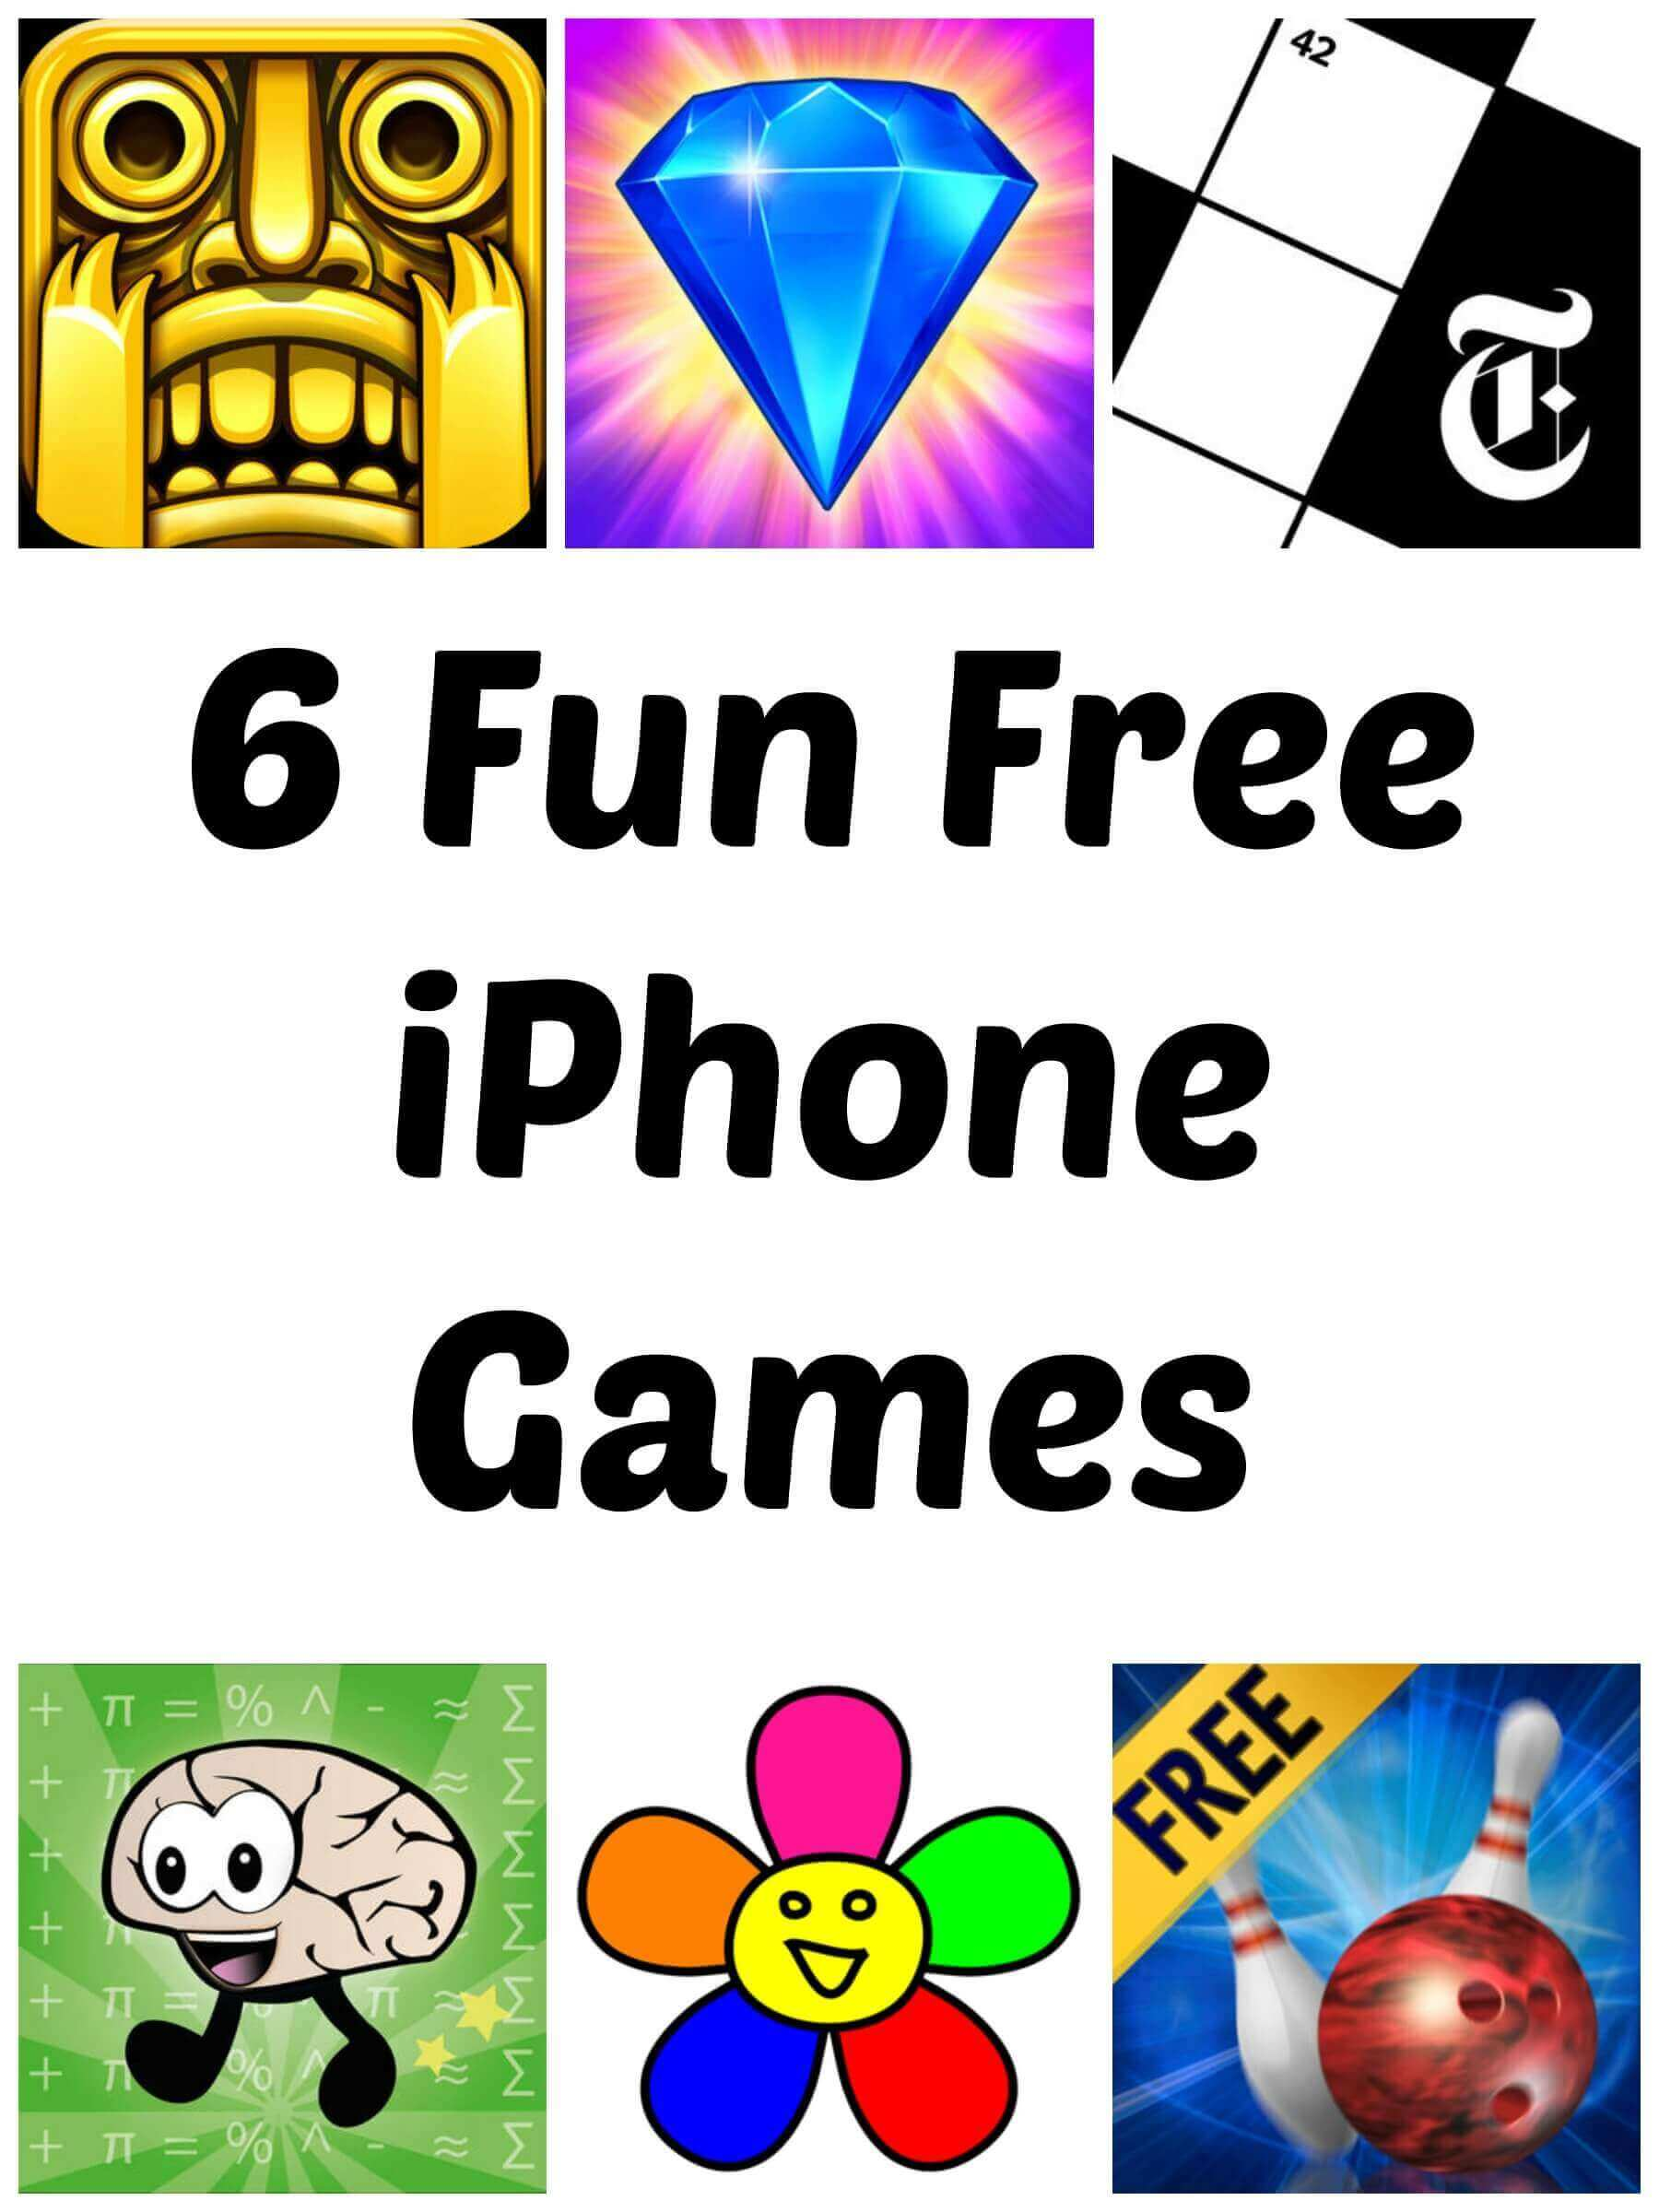 6 Fun Free iPhone Games - Temple Run, My Coloring Book, BrainTuner, Action Bowling, Bejeweled and NYTimes Crossword - Daily Word Puzzle Game